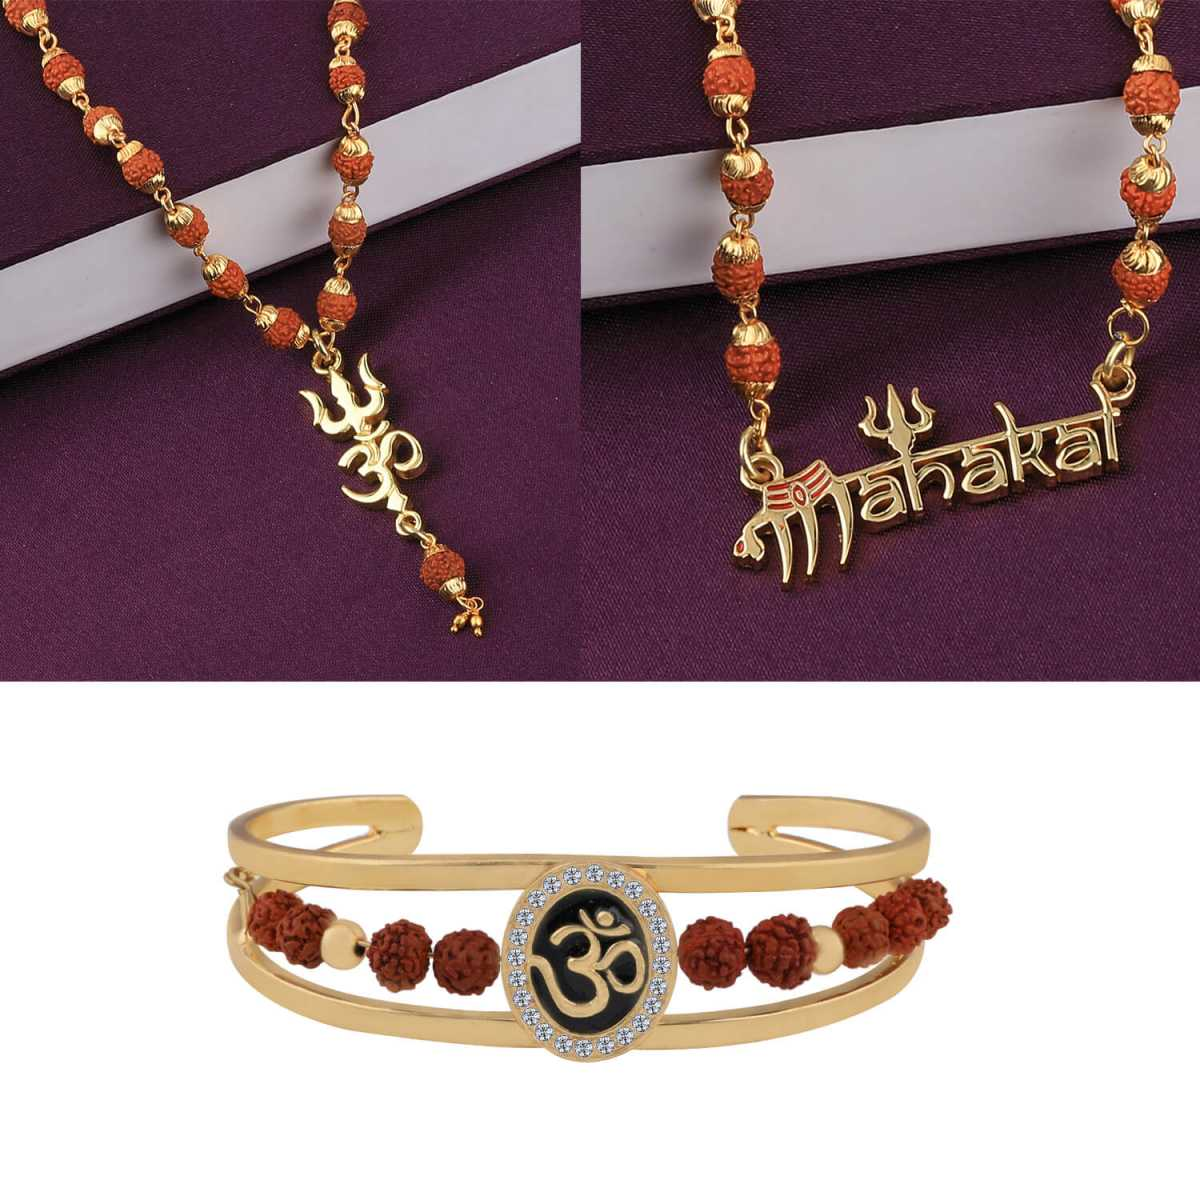 SILVER SHINE Gold Plated Traditional Combo Rudraksh Mala and Kada Pendant for Men and Women-Set 3